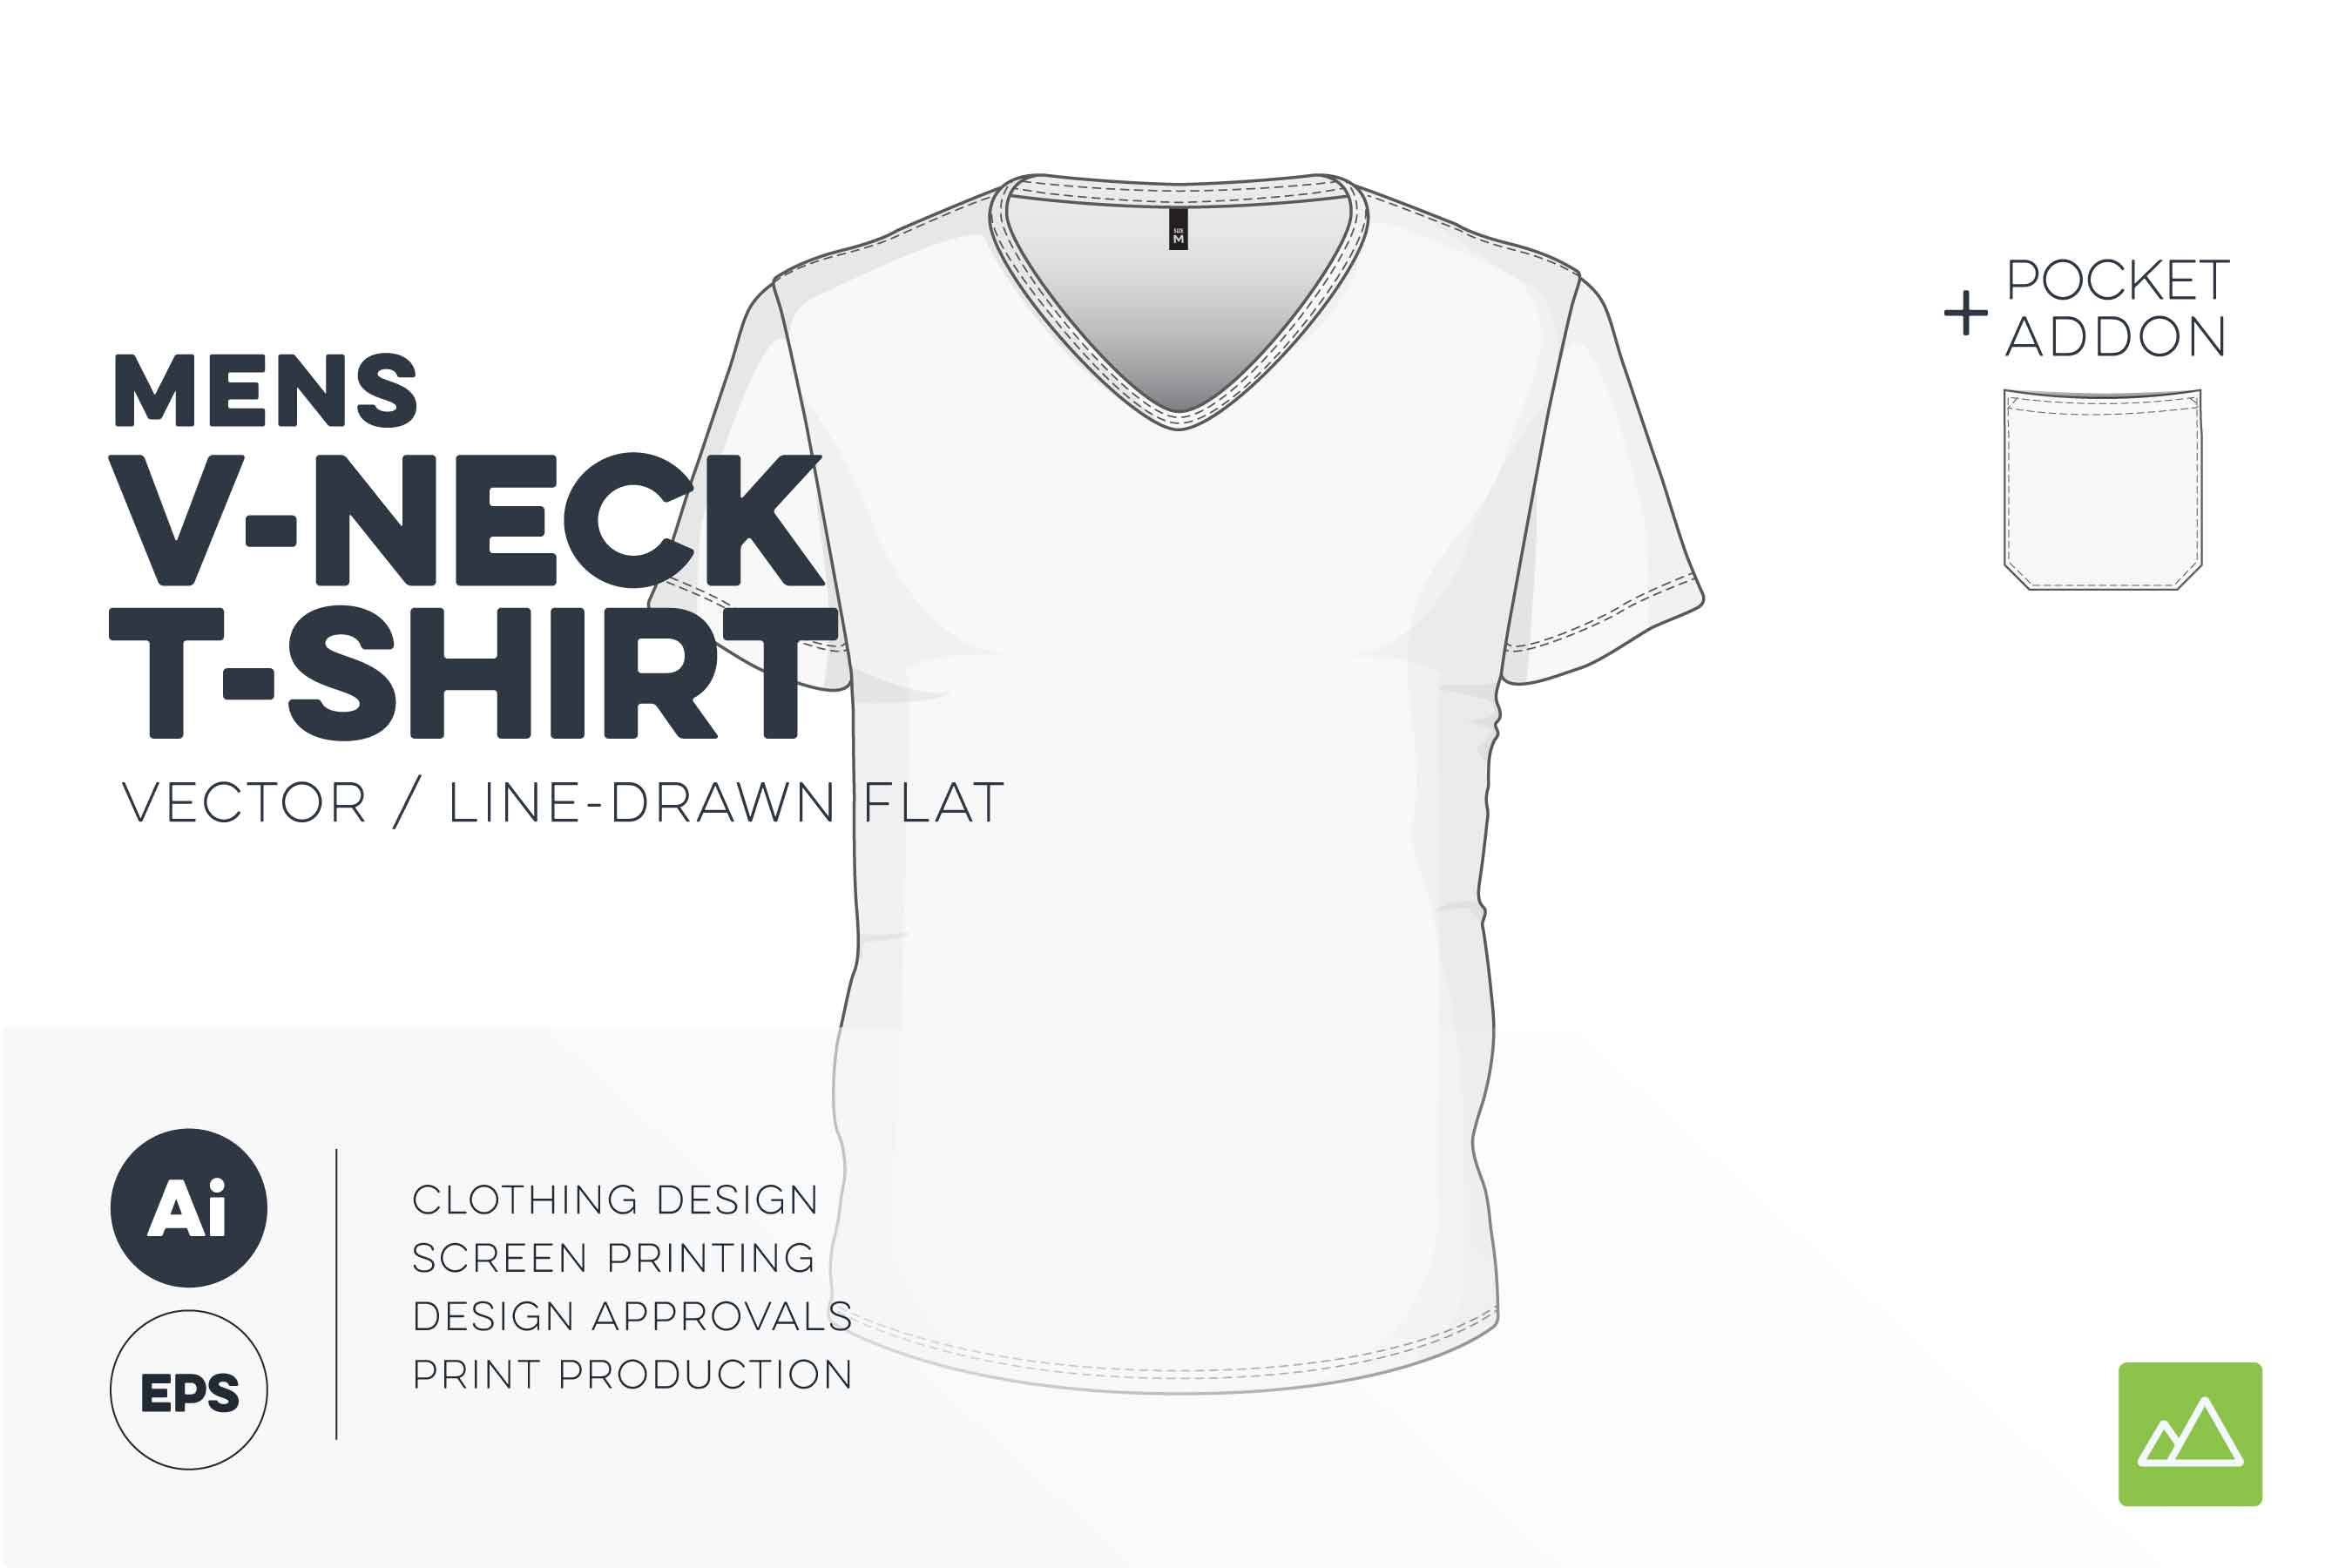 Mens v-neck t-shirt template vector pack